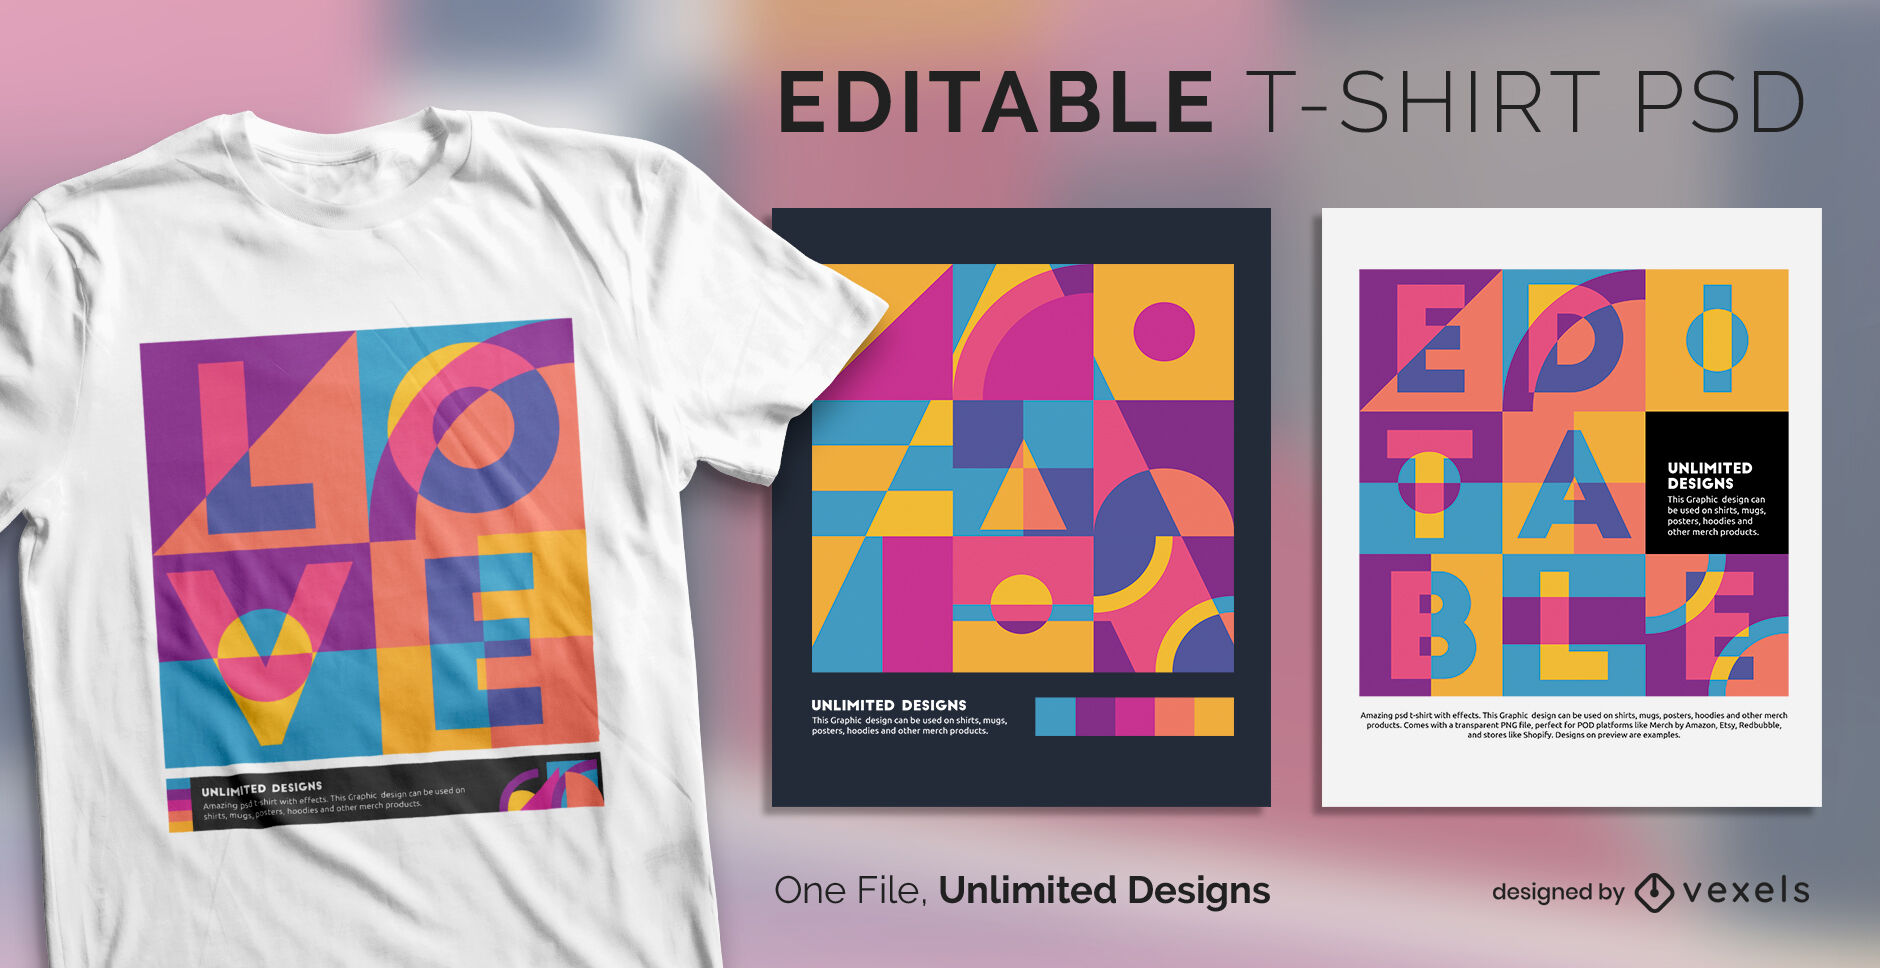 Abstract shapes pop art scalable t-shirt psd